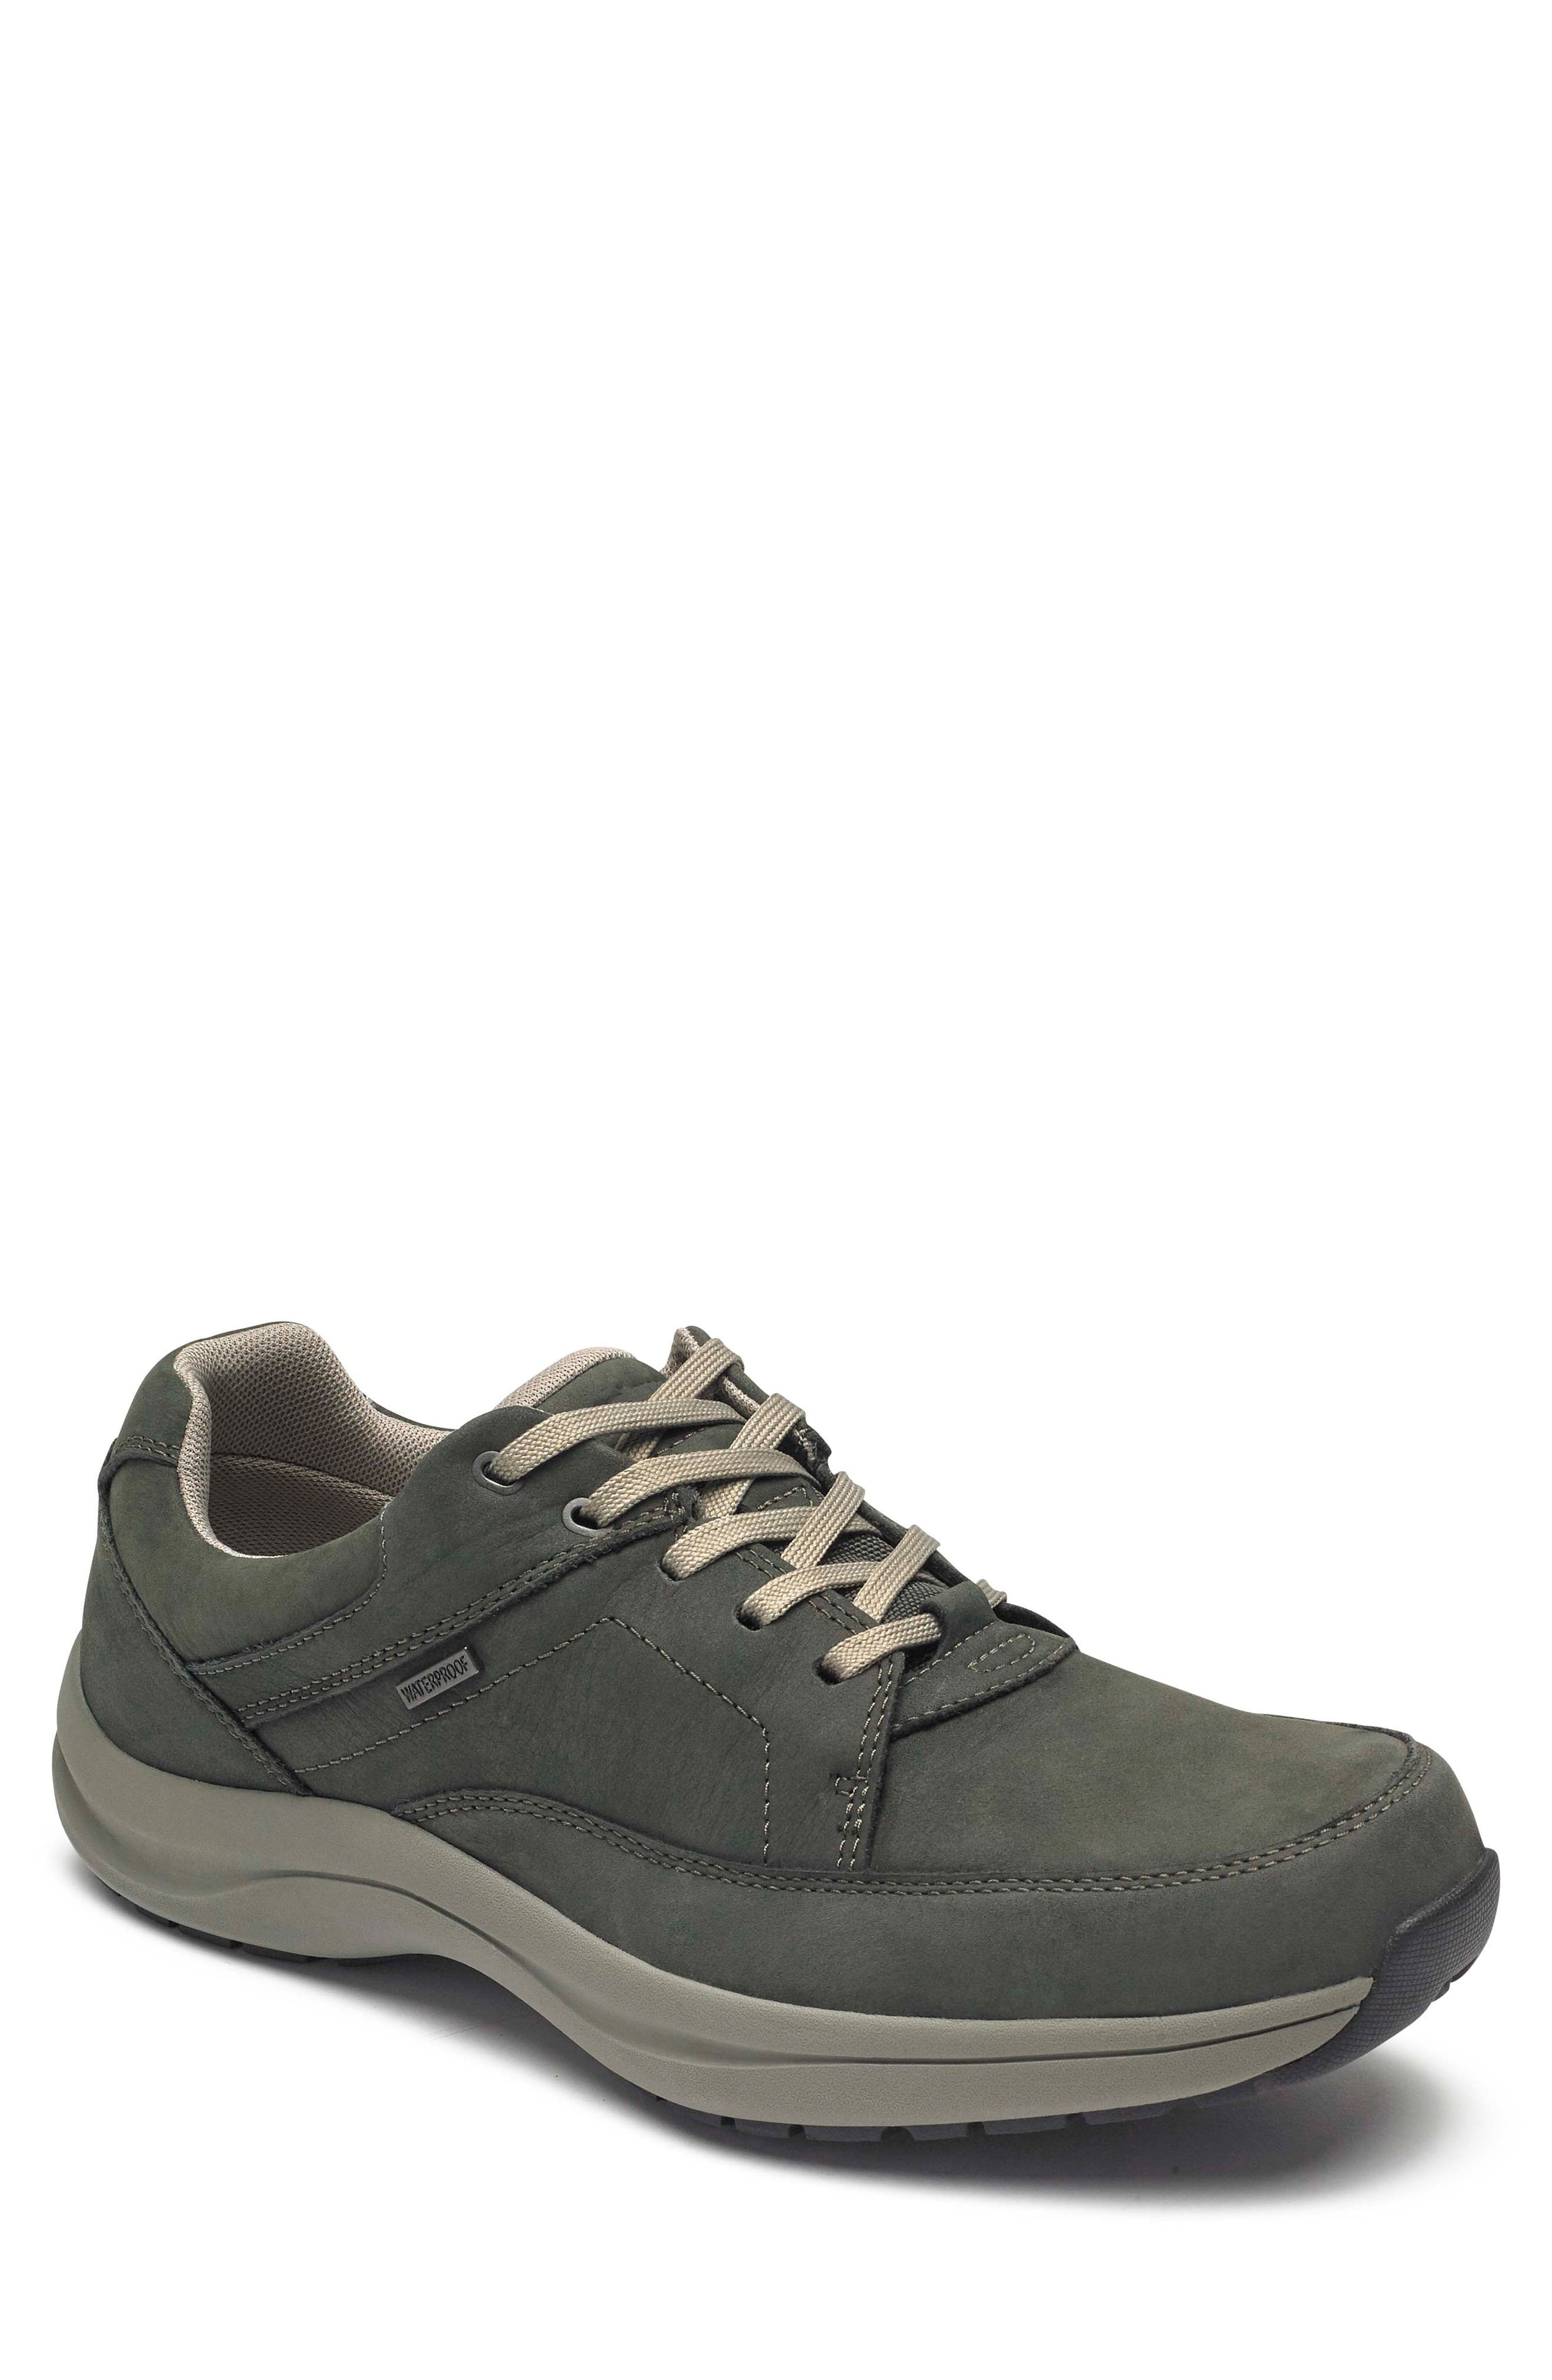 DUNHAM, Stephen-DUN Waterproof Derby, Main thumbnail 1, color, GREEN LEATHER